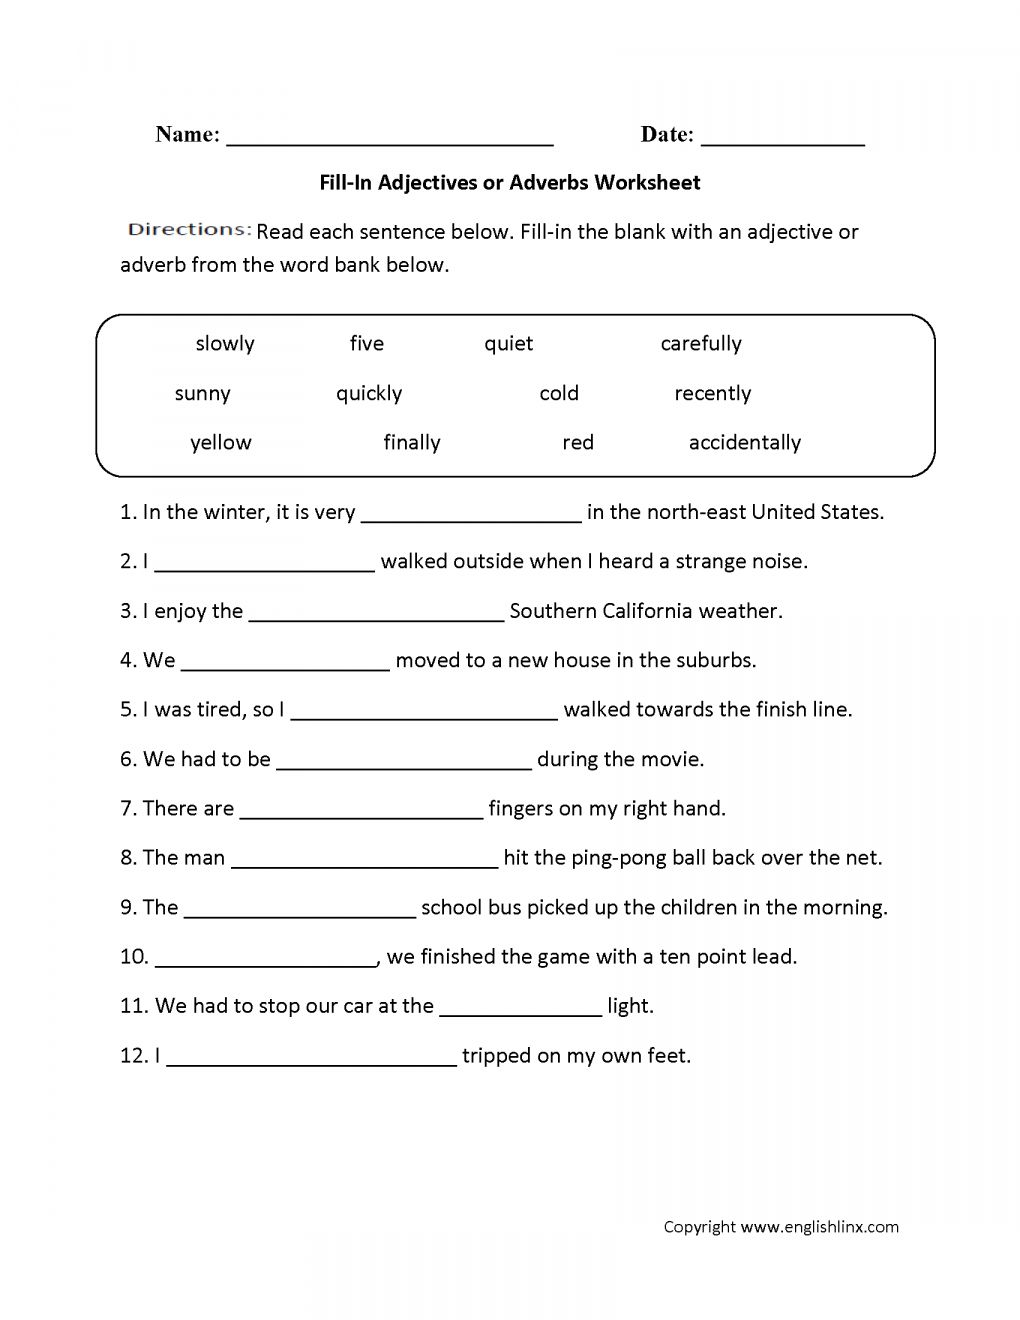 7 Adjectives And Adverbs Worksheet 6th Grade Adverbs Worksheet Context Clues Worksheets Adjective Worksheet